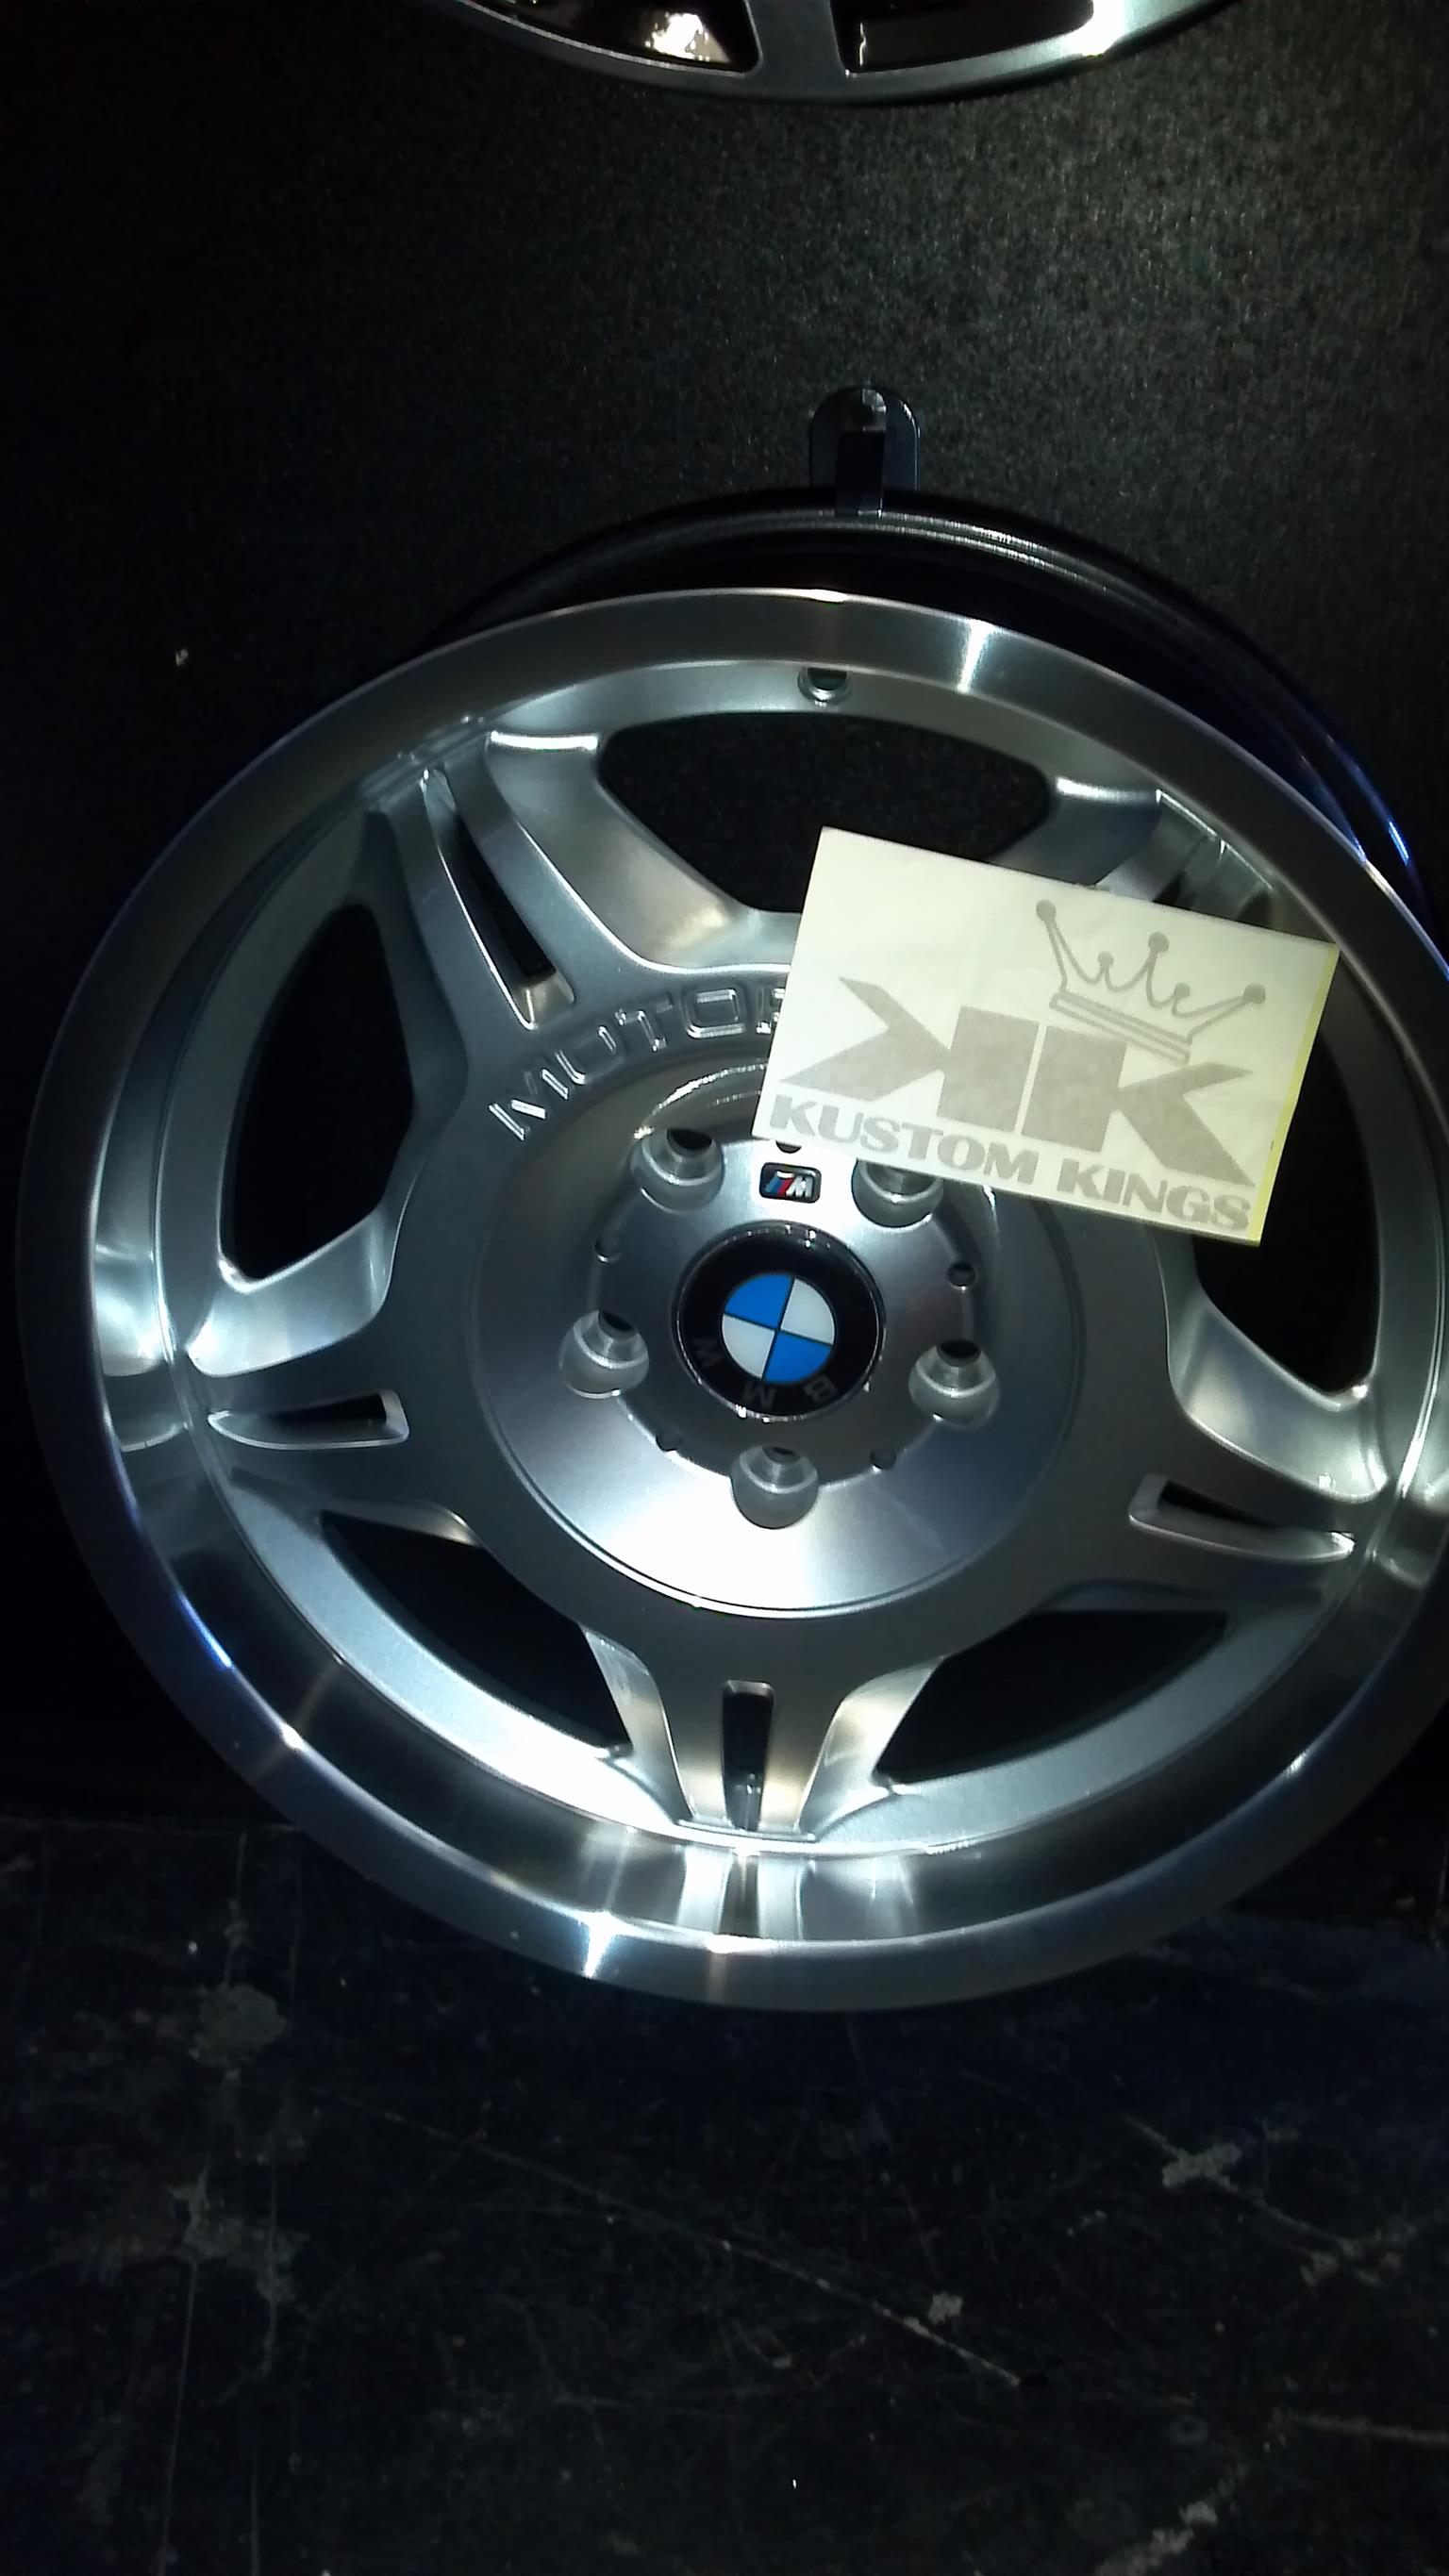 Bmw E36 M3 Motorsport wheels for sale brand new only R8500 | Junk Mail